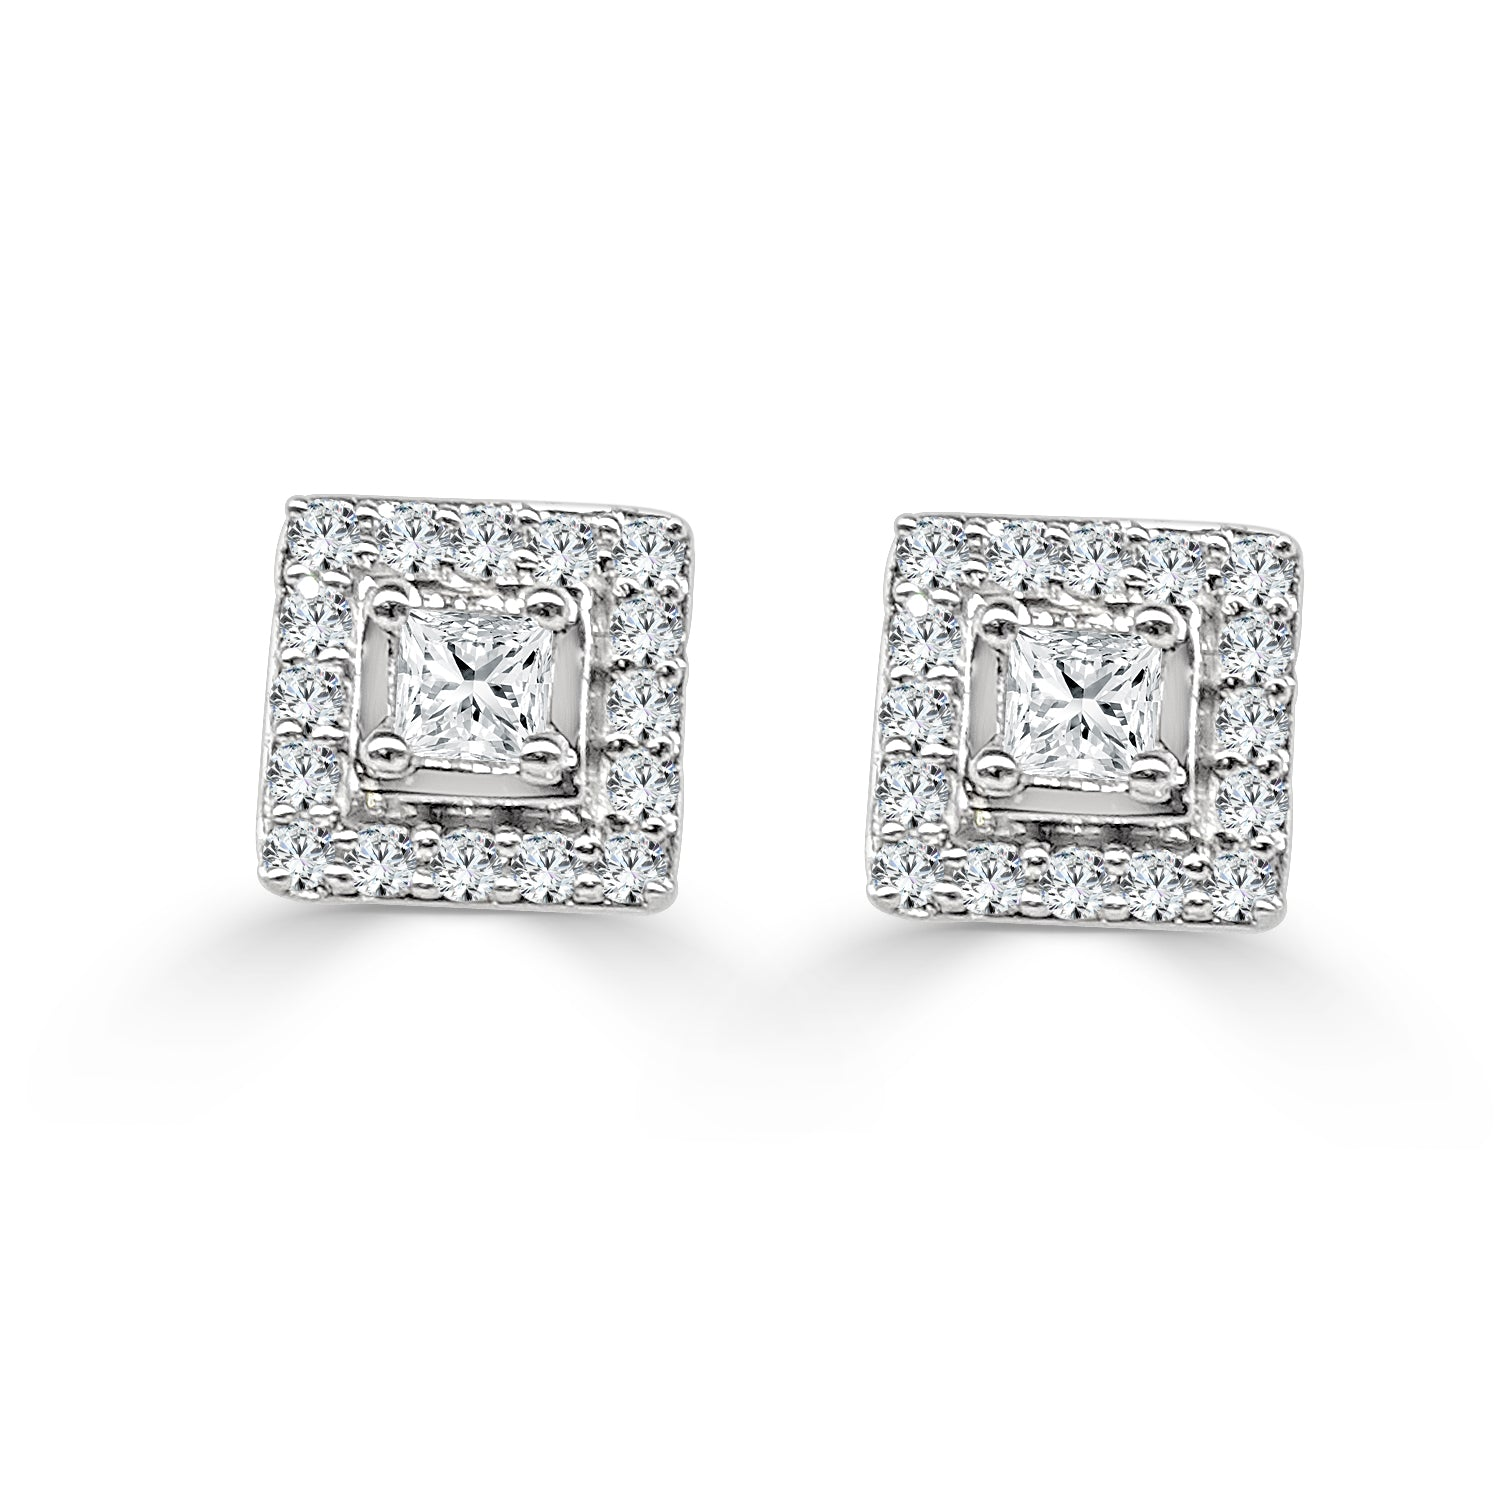 rg studs stud eagle princess fine diamonds setting diamond gold products prong cut earrings four